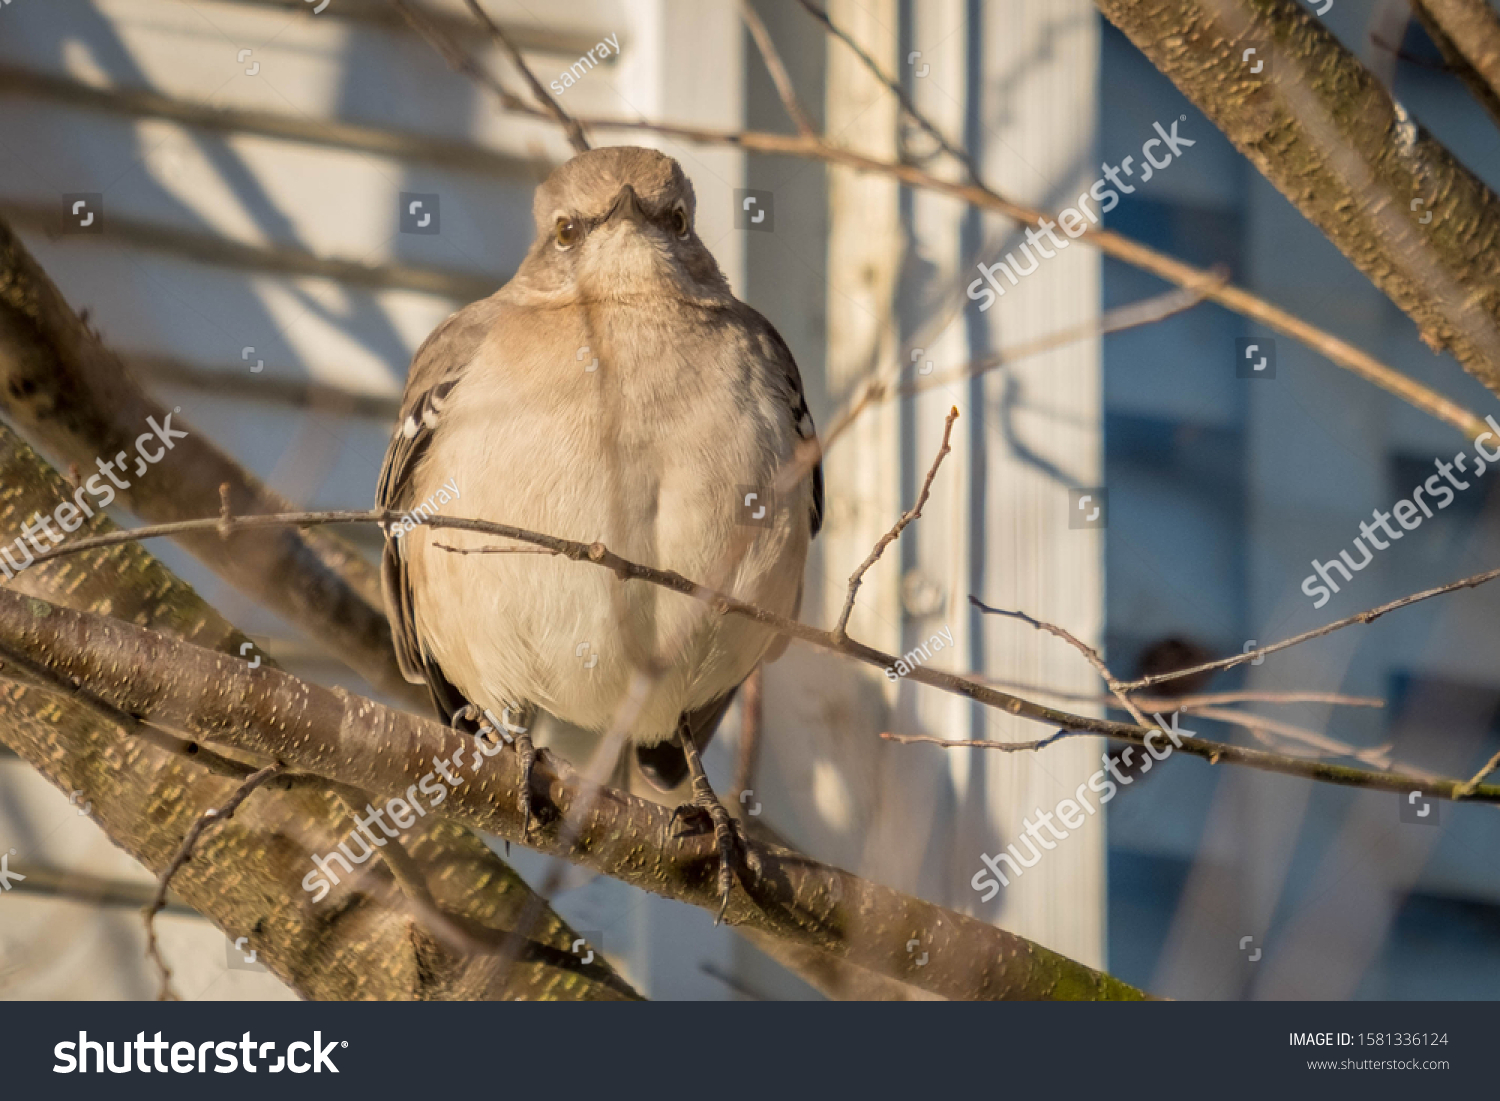 A humorous image of a Northern Mockingbird puffed up into a sphere as if it ate a tennis ball. Raleigh, North Carolina.